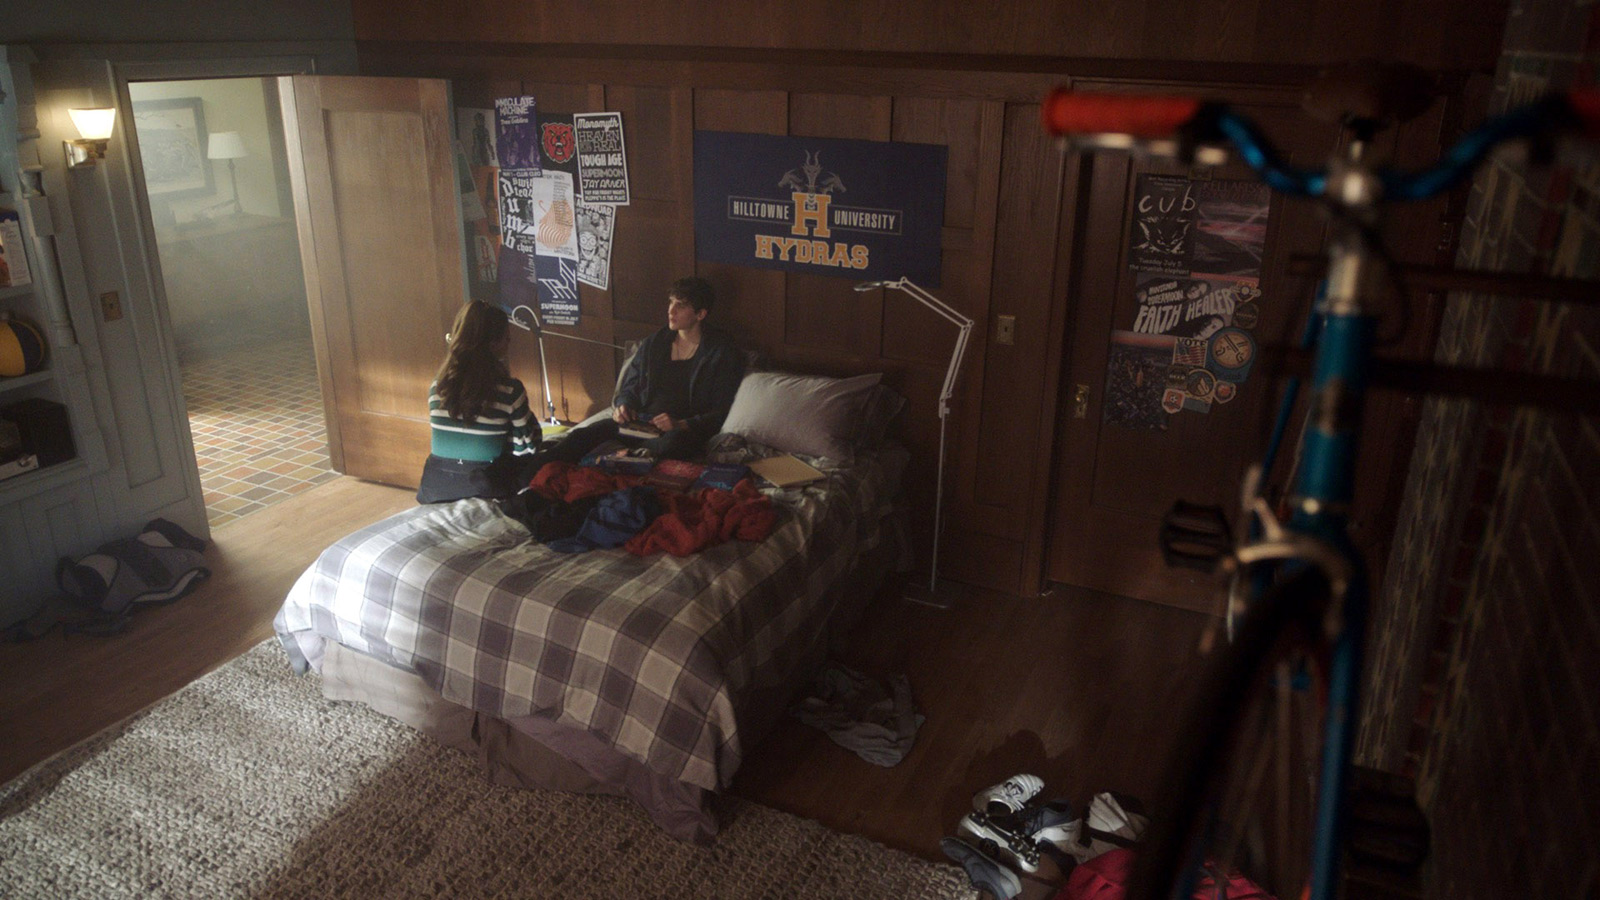 CHARMED: S1 - PARKER'S DORM ROOM - SCREEN STILL